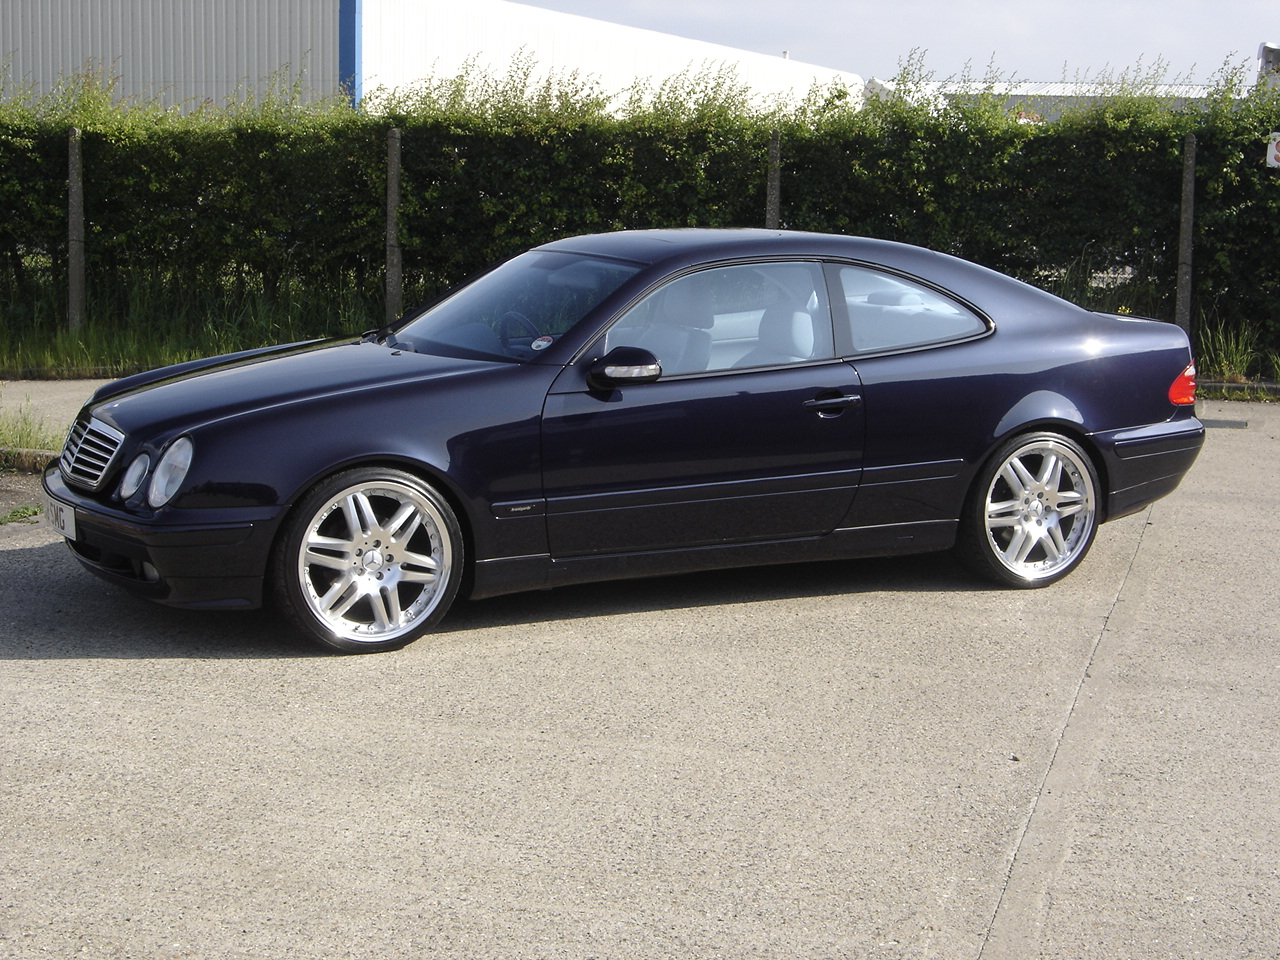 Mercedes Benz C320 2002 Review Amazing Pictures And